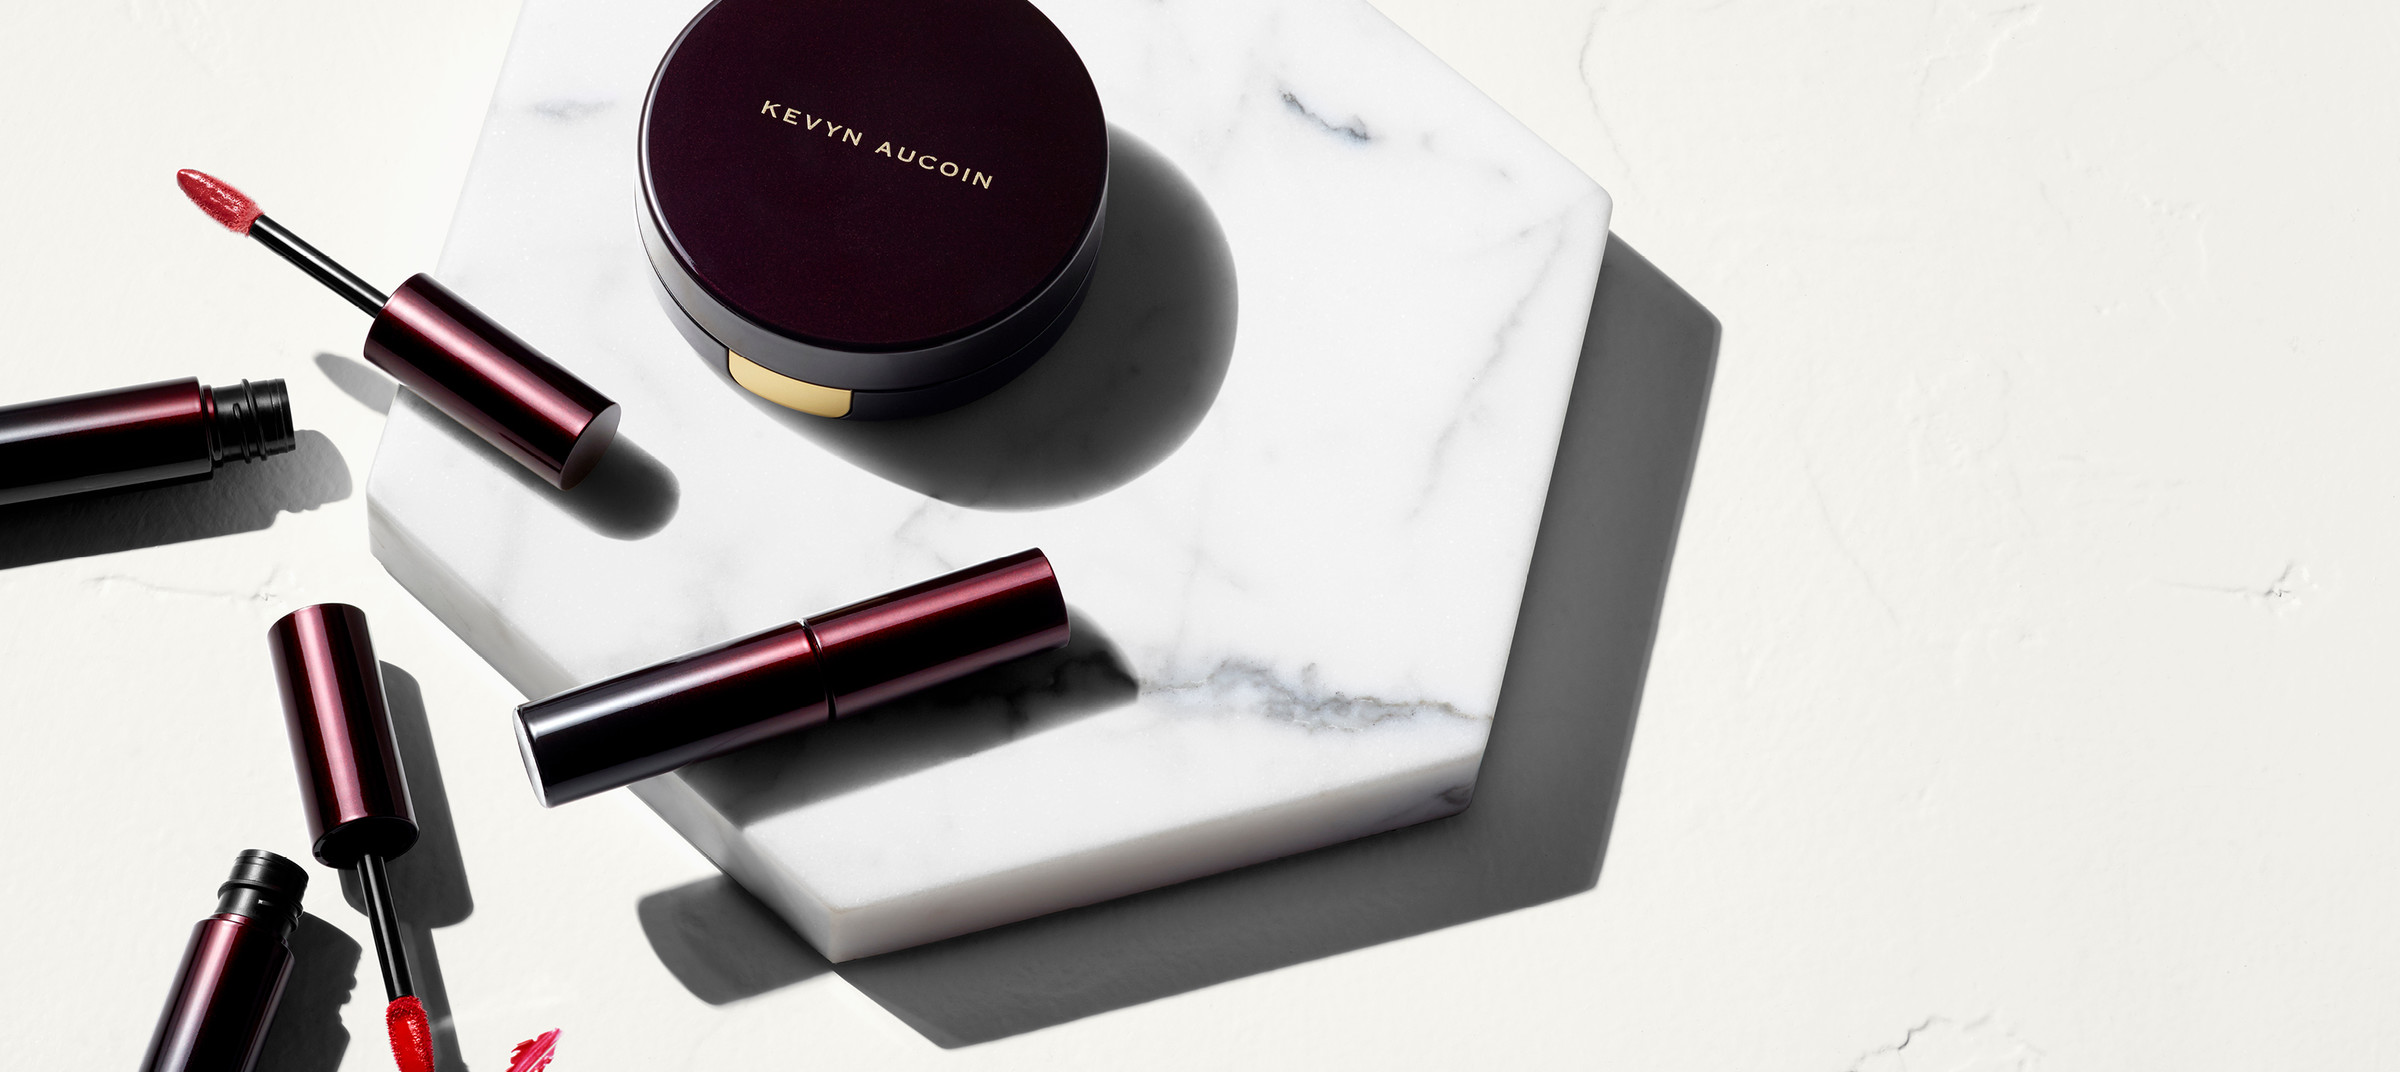 Kevyn Aucoin's beauty campaign's digital content shot and directed by DTE